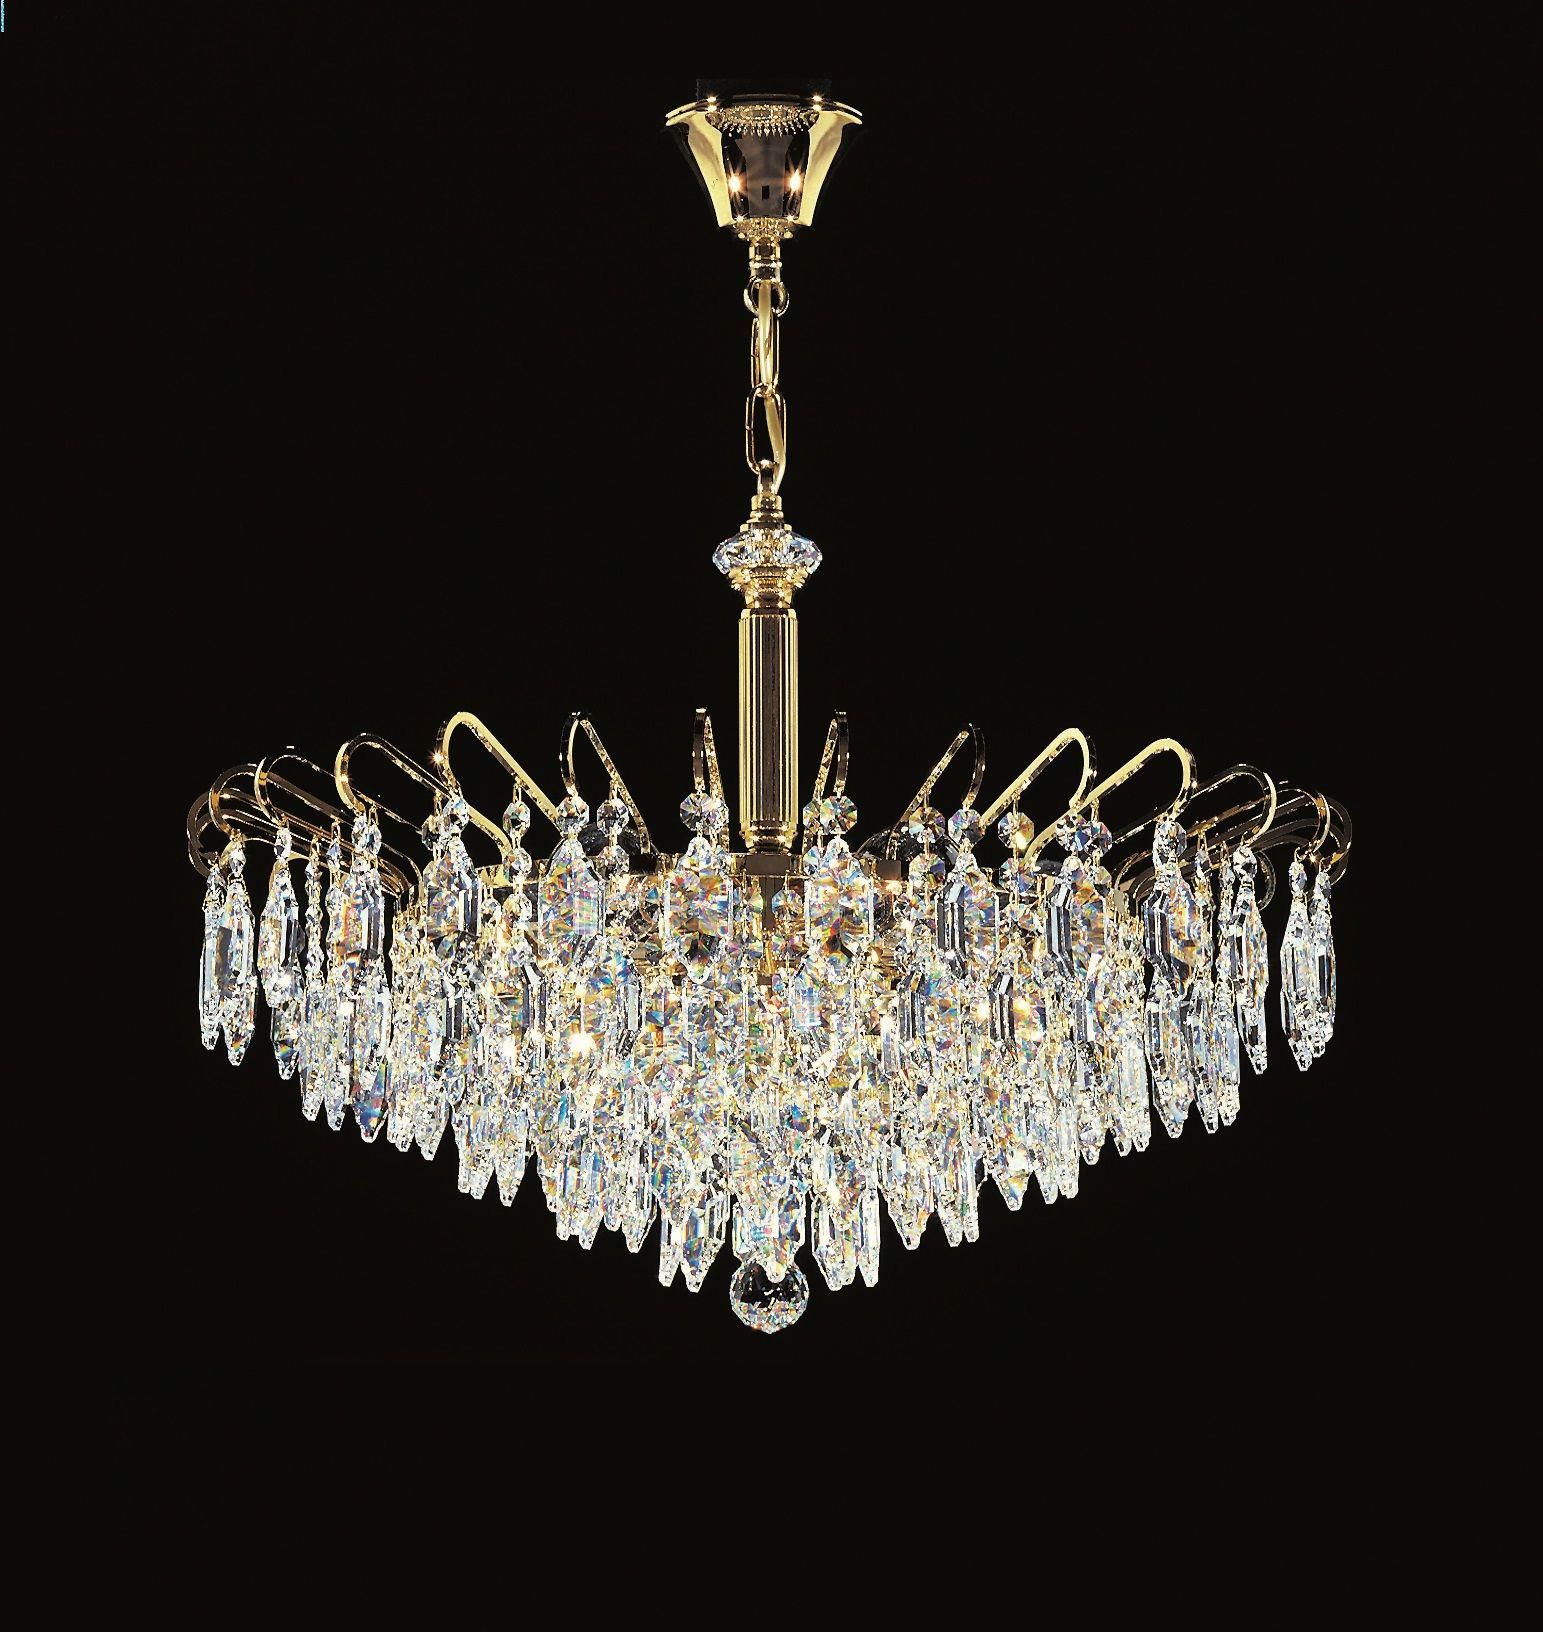 Stunning Chandelier Part Of Our Latest Range Of Beautiful Art